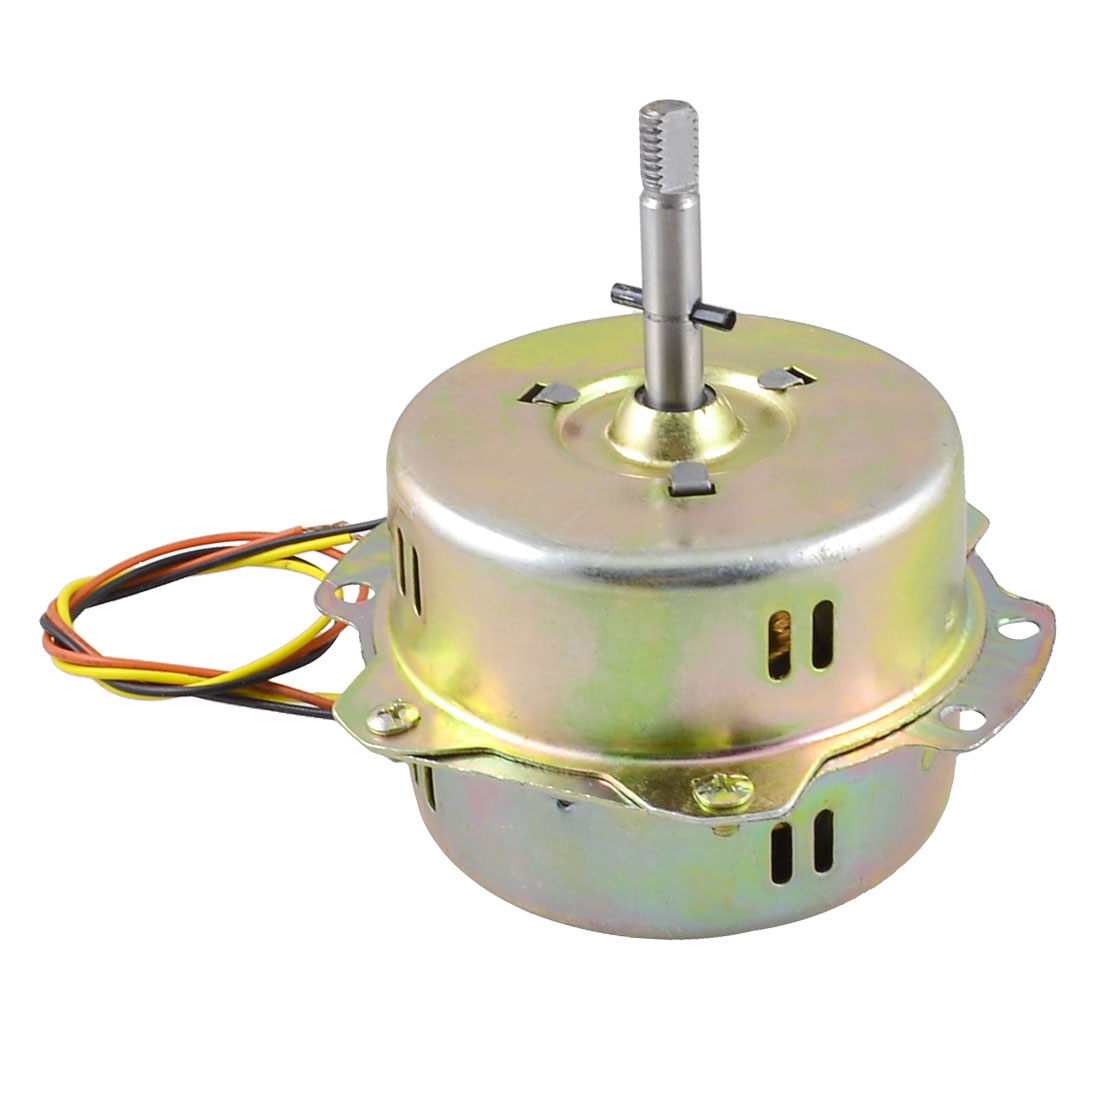 AC 220V 50Hz 45W Exhaust Fan Ventilator Mini Micro Motor Brass Tone w Cable